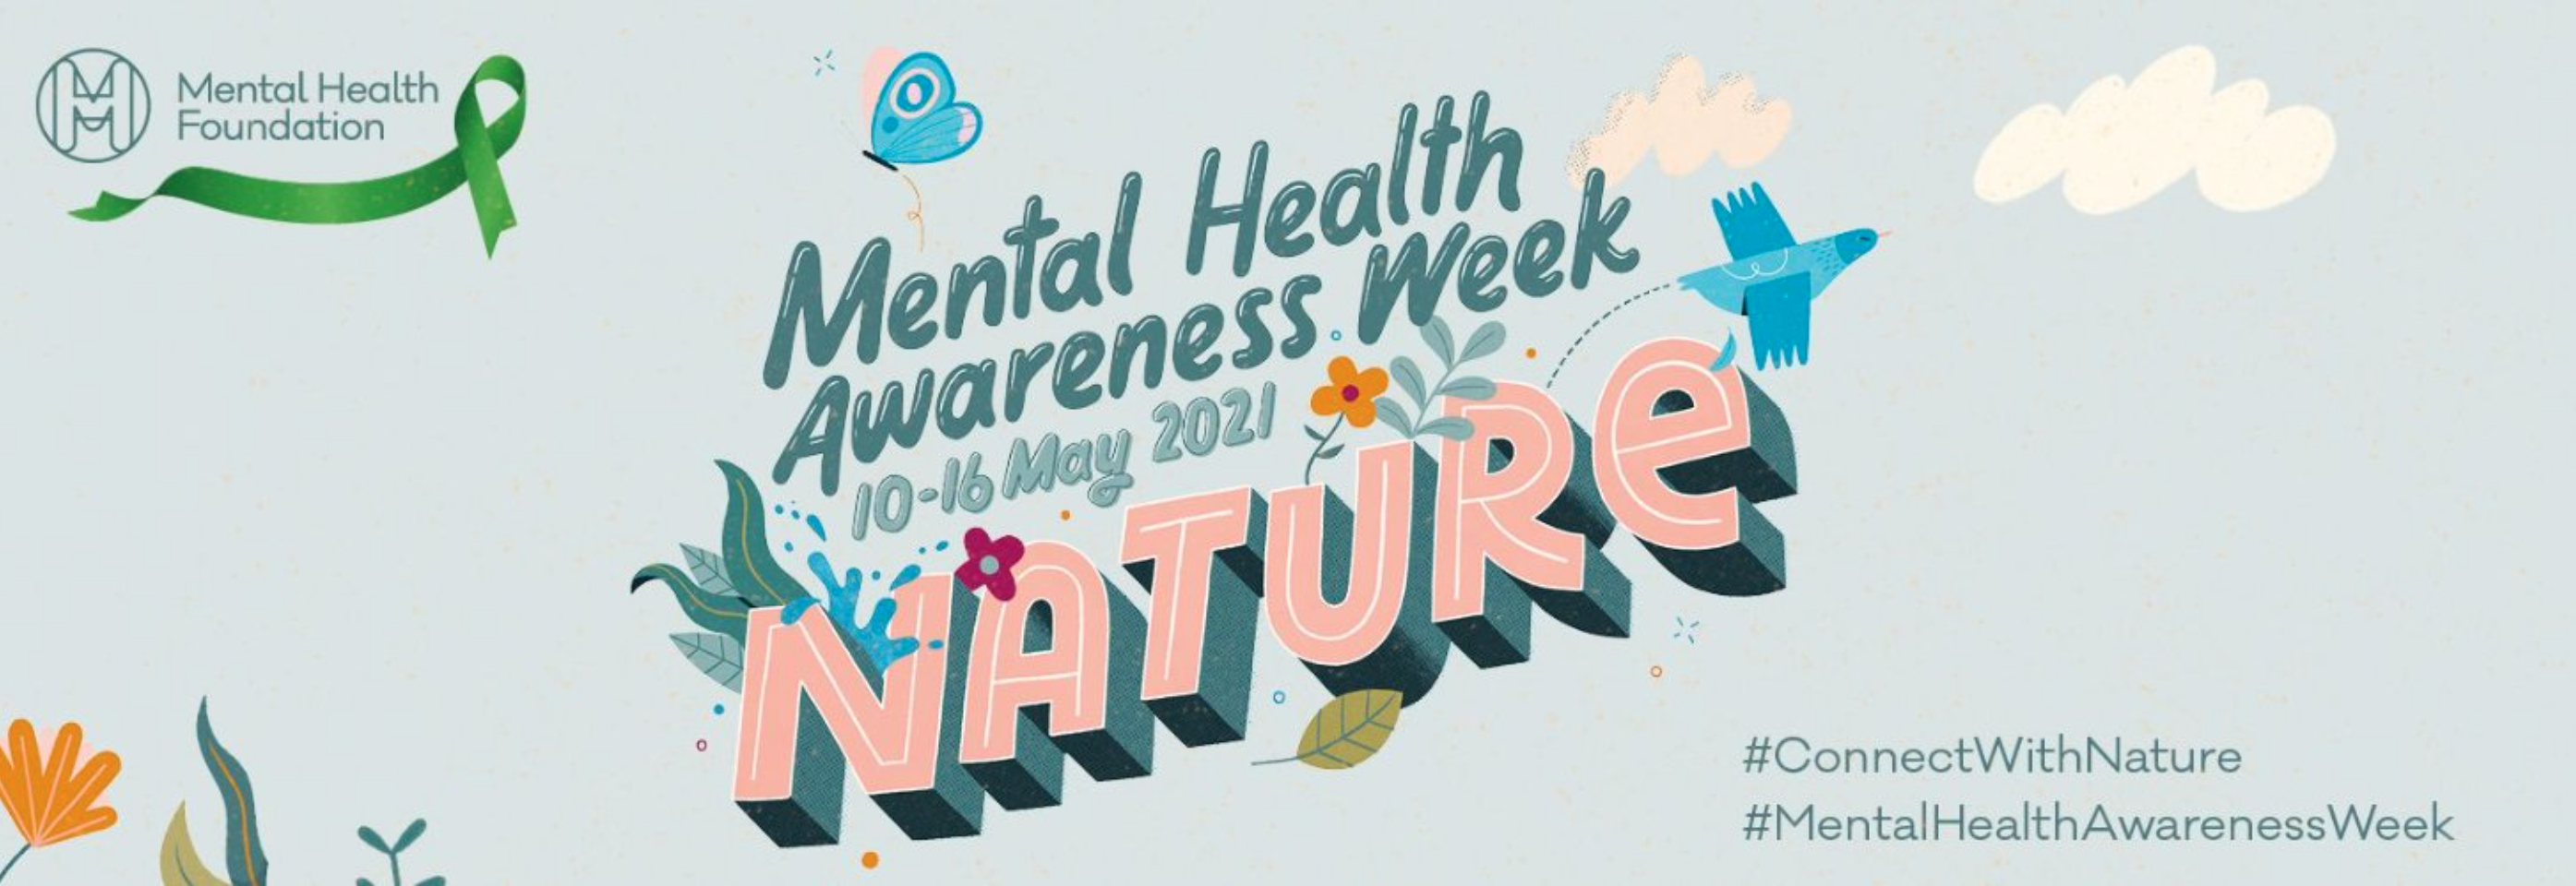 Above: The theme for this year's Mental Health Awareness Week is nature.